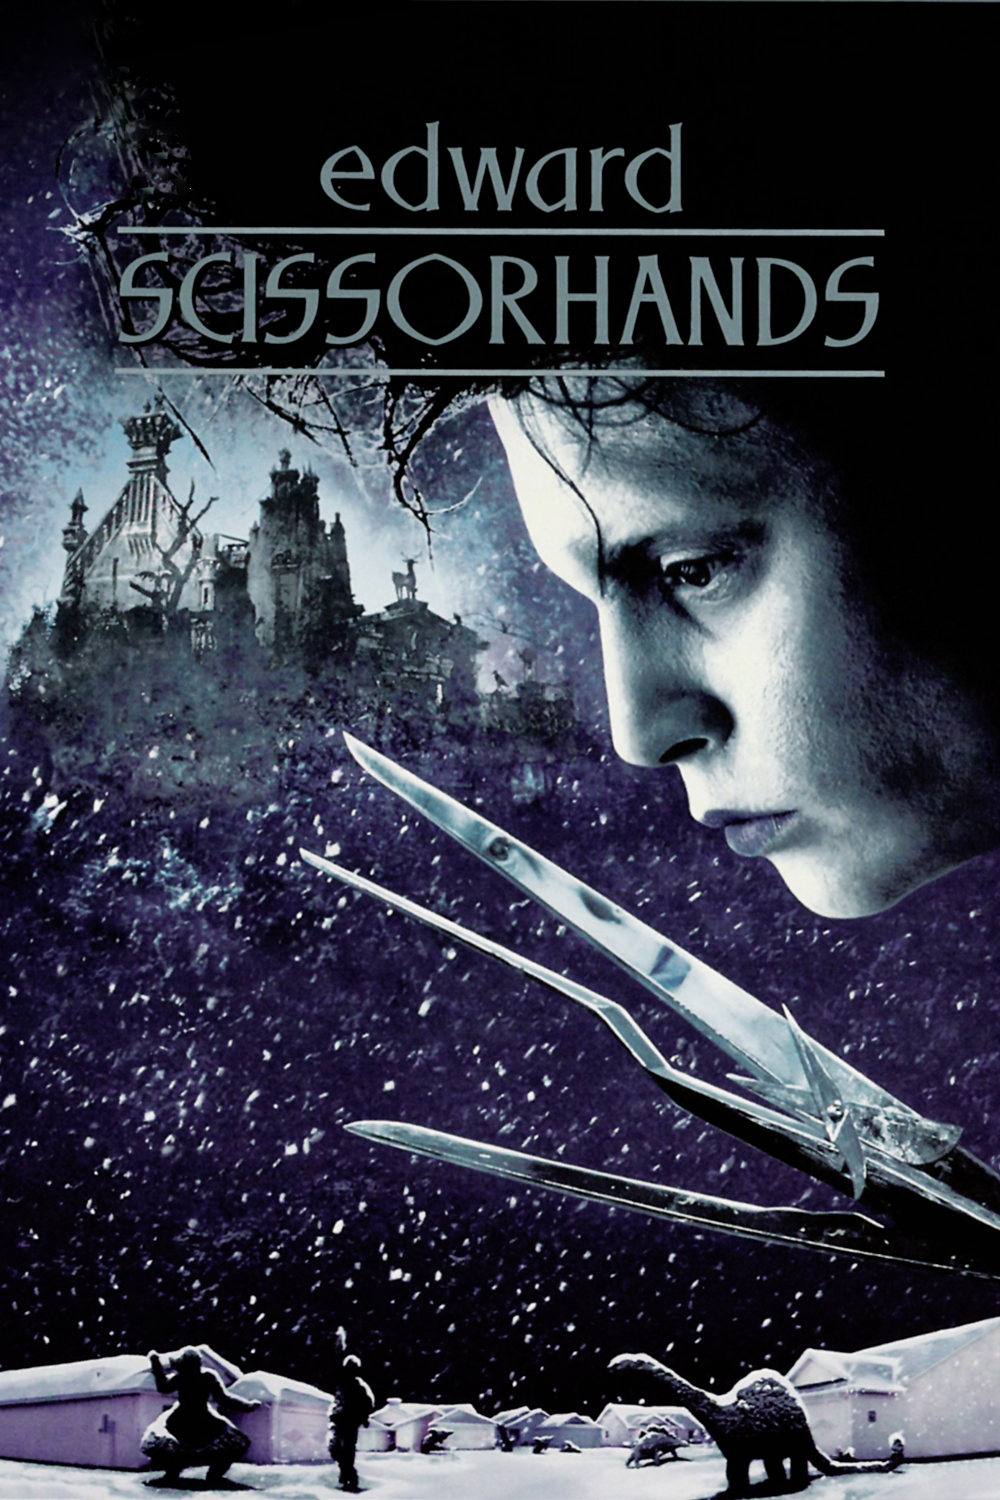 edward poser - Edward Scissorhands: A Gothic Classic 25 Years Later